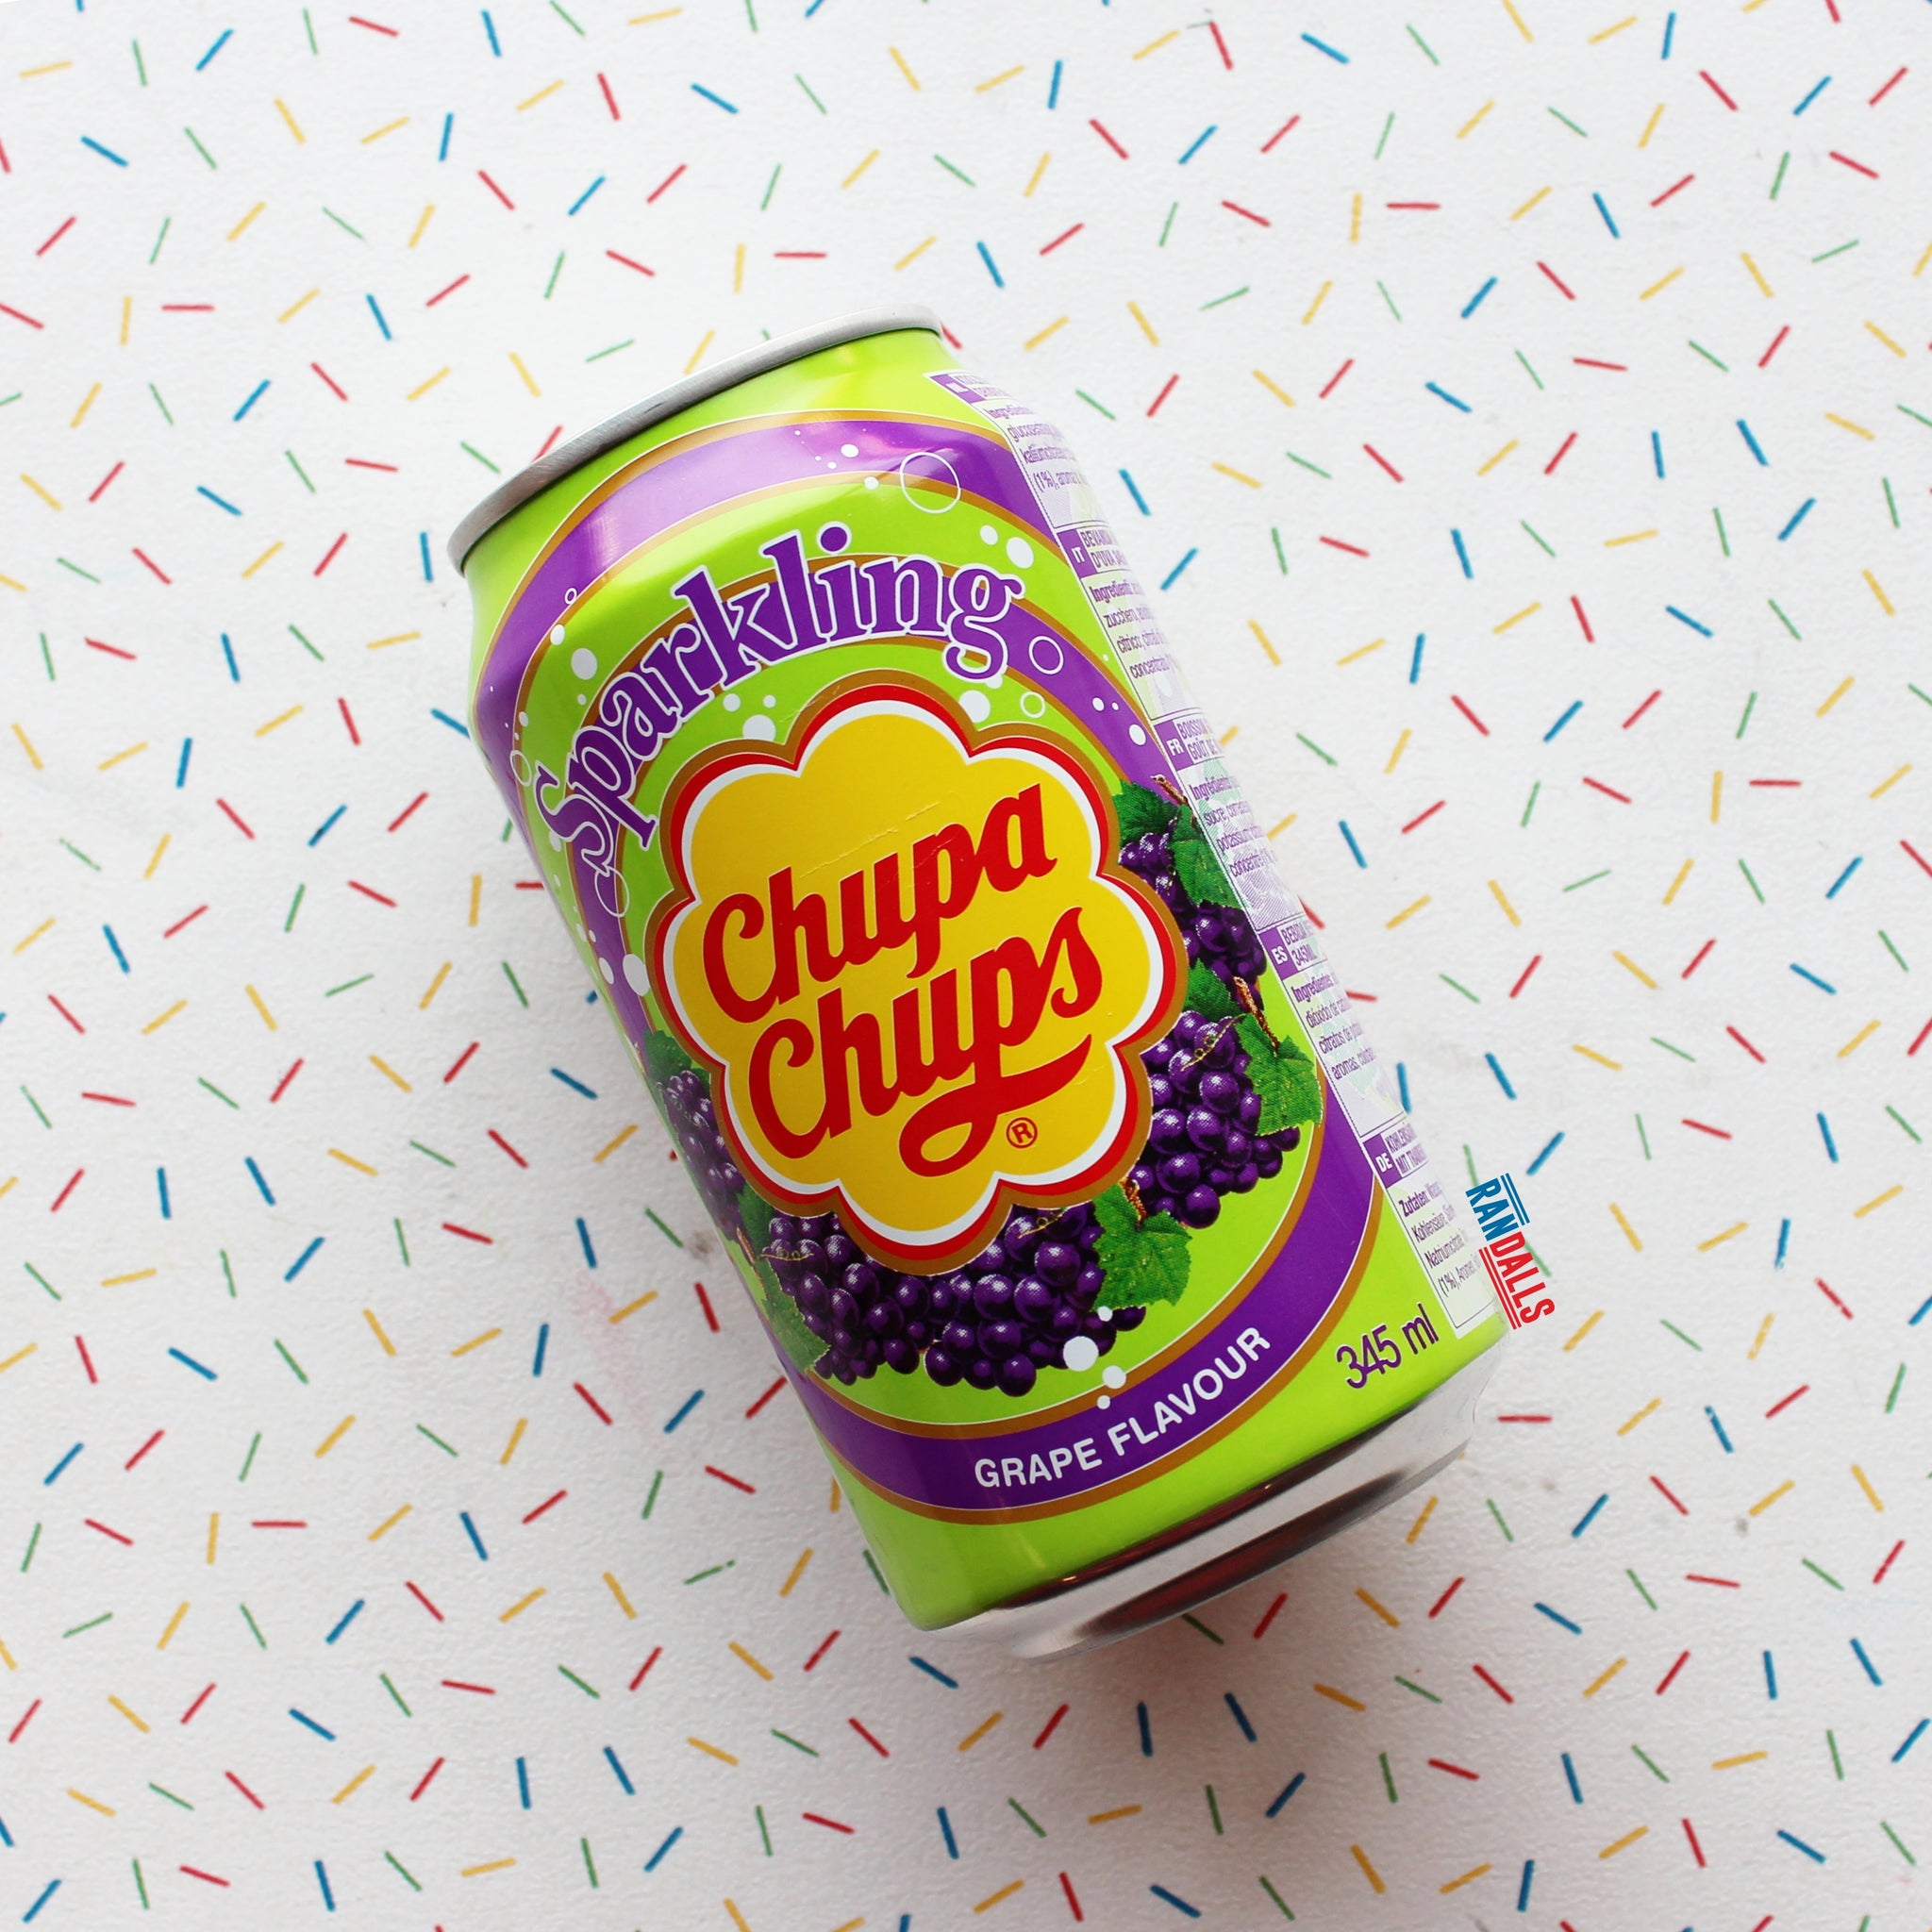 CHUPA CHUPS SPARLING GRAPE (SOUTH KOREA)